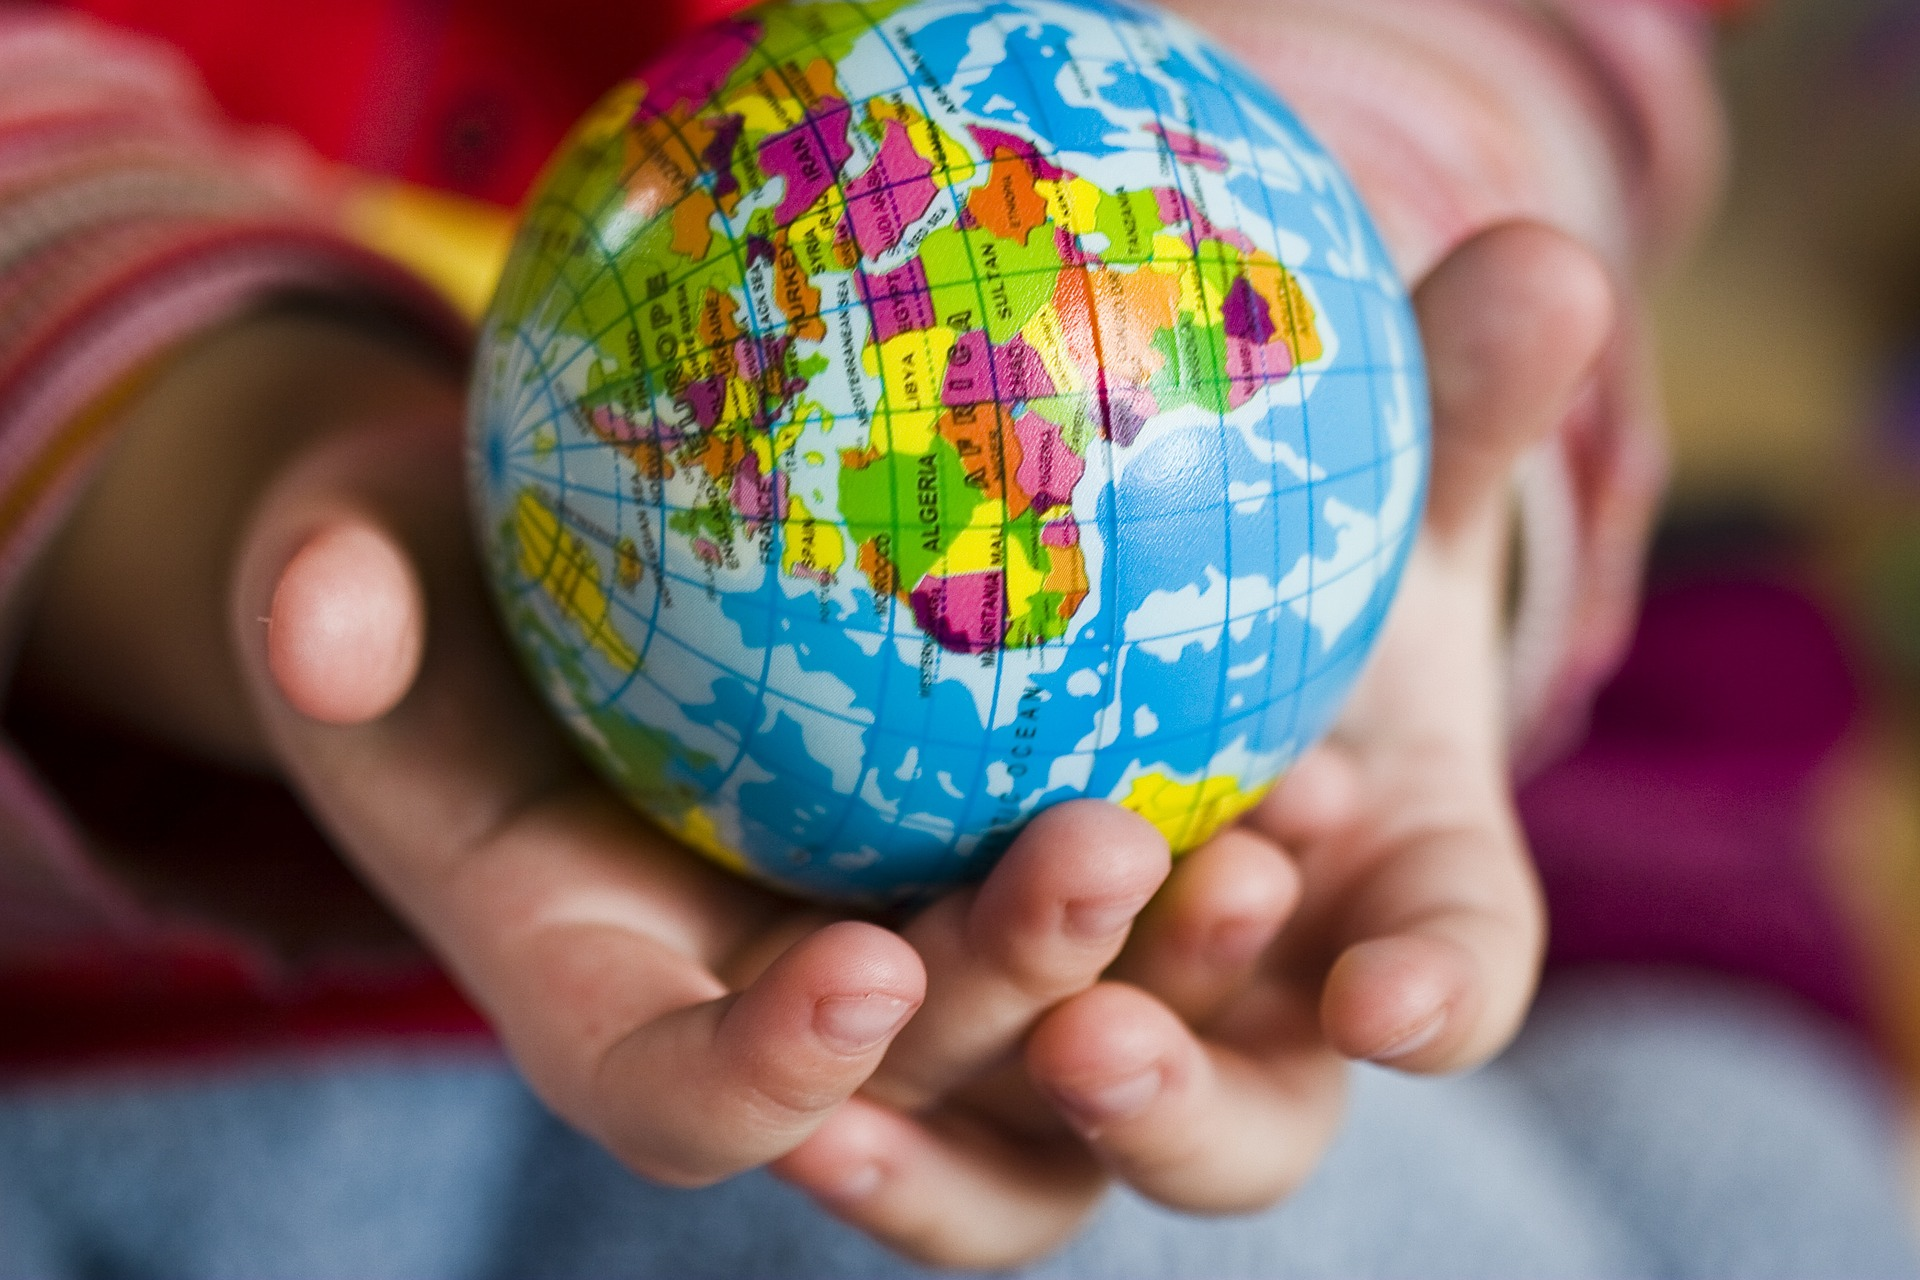 A hand holding a small globe in an article about third culture kids